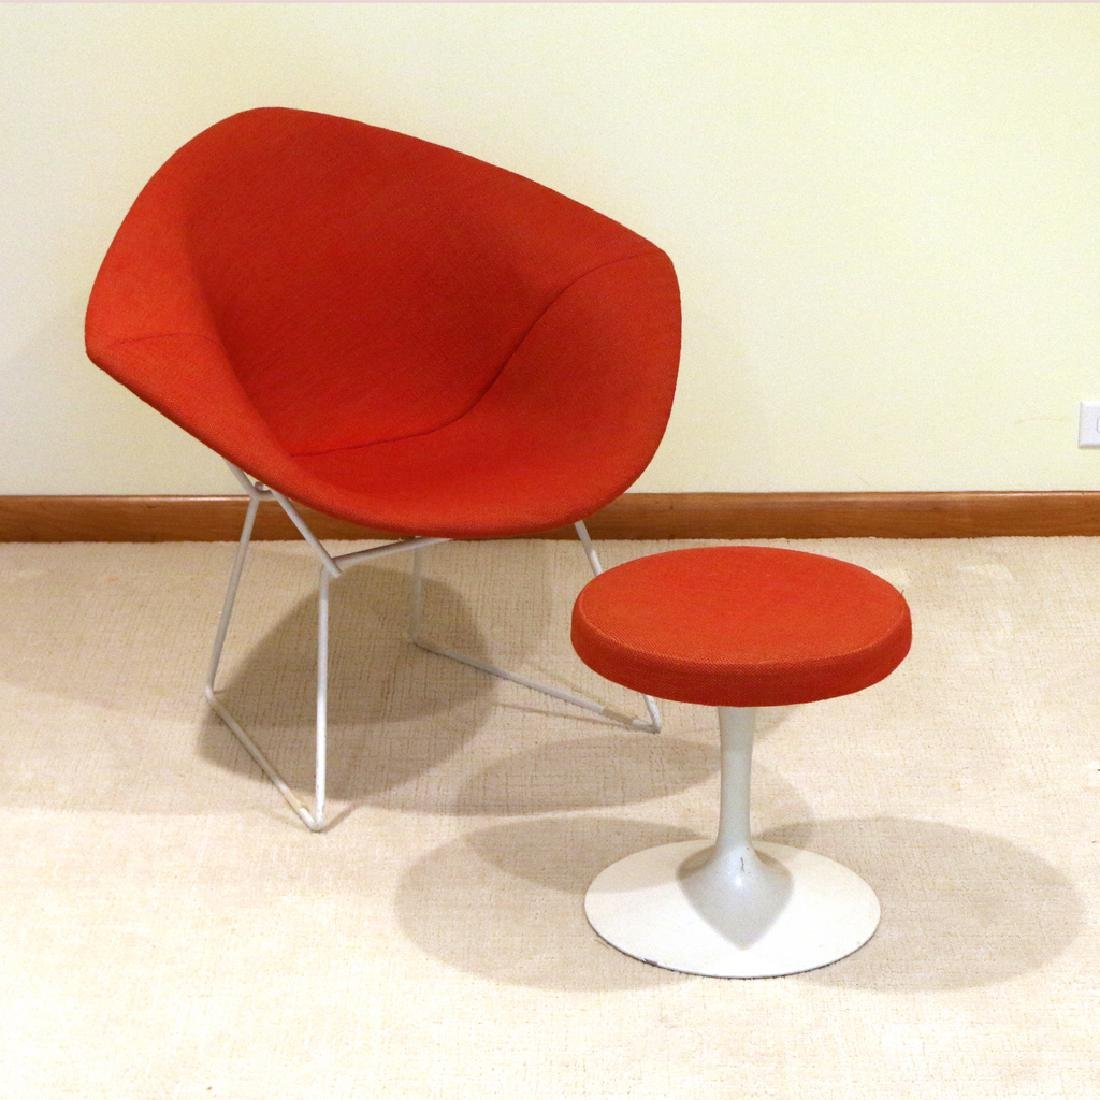 Diamond Furniture for Sale at Auction